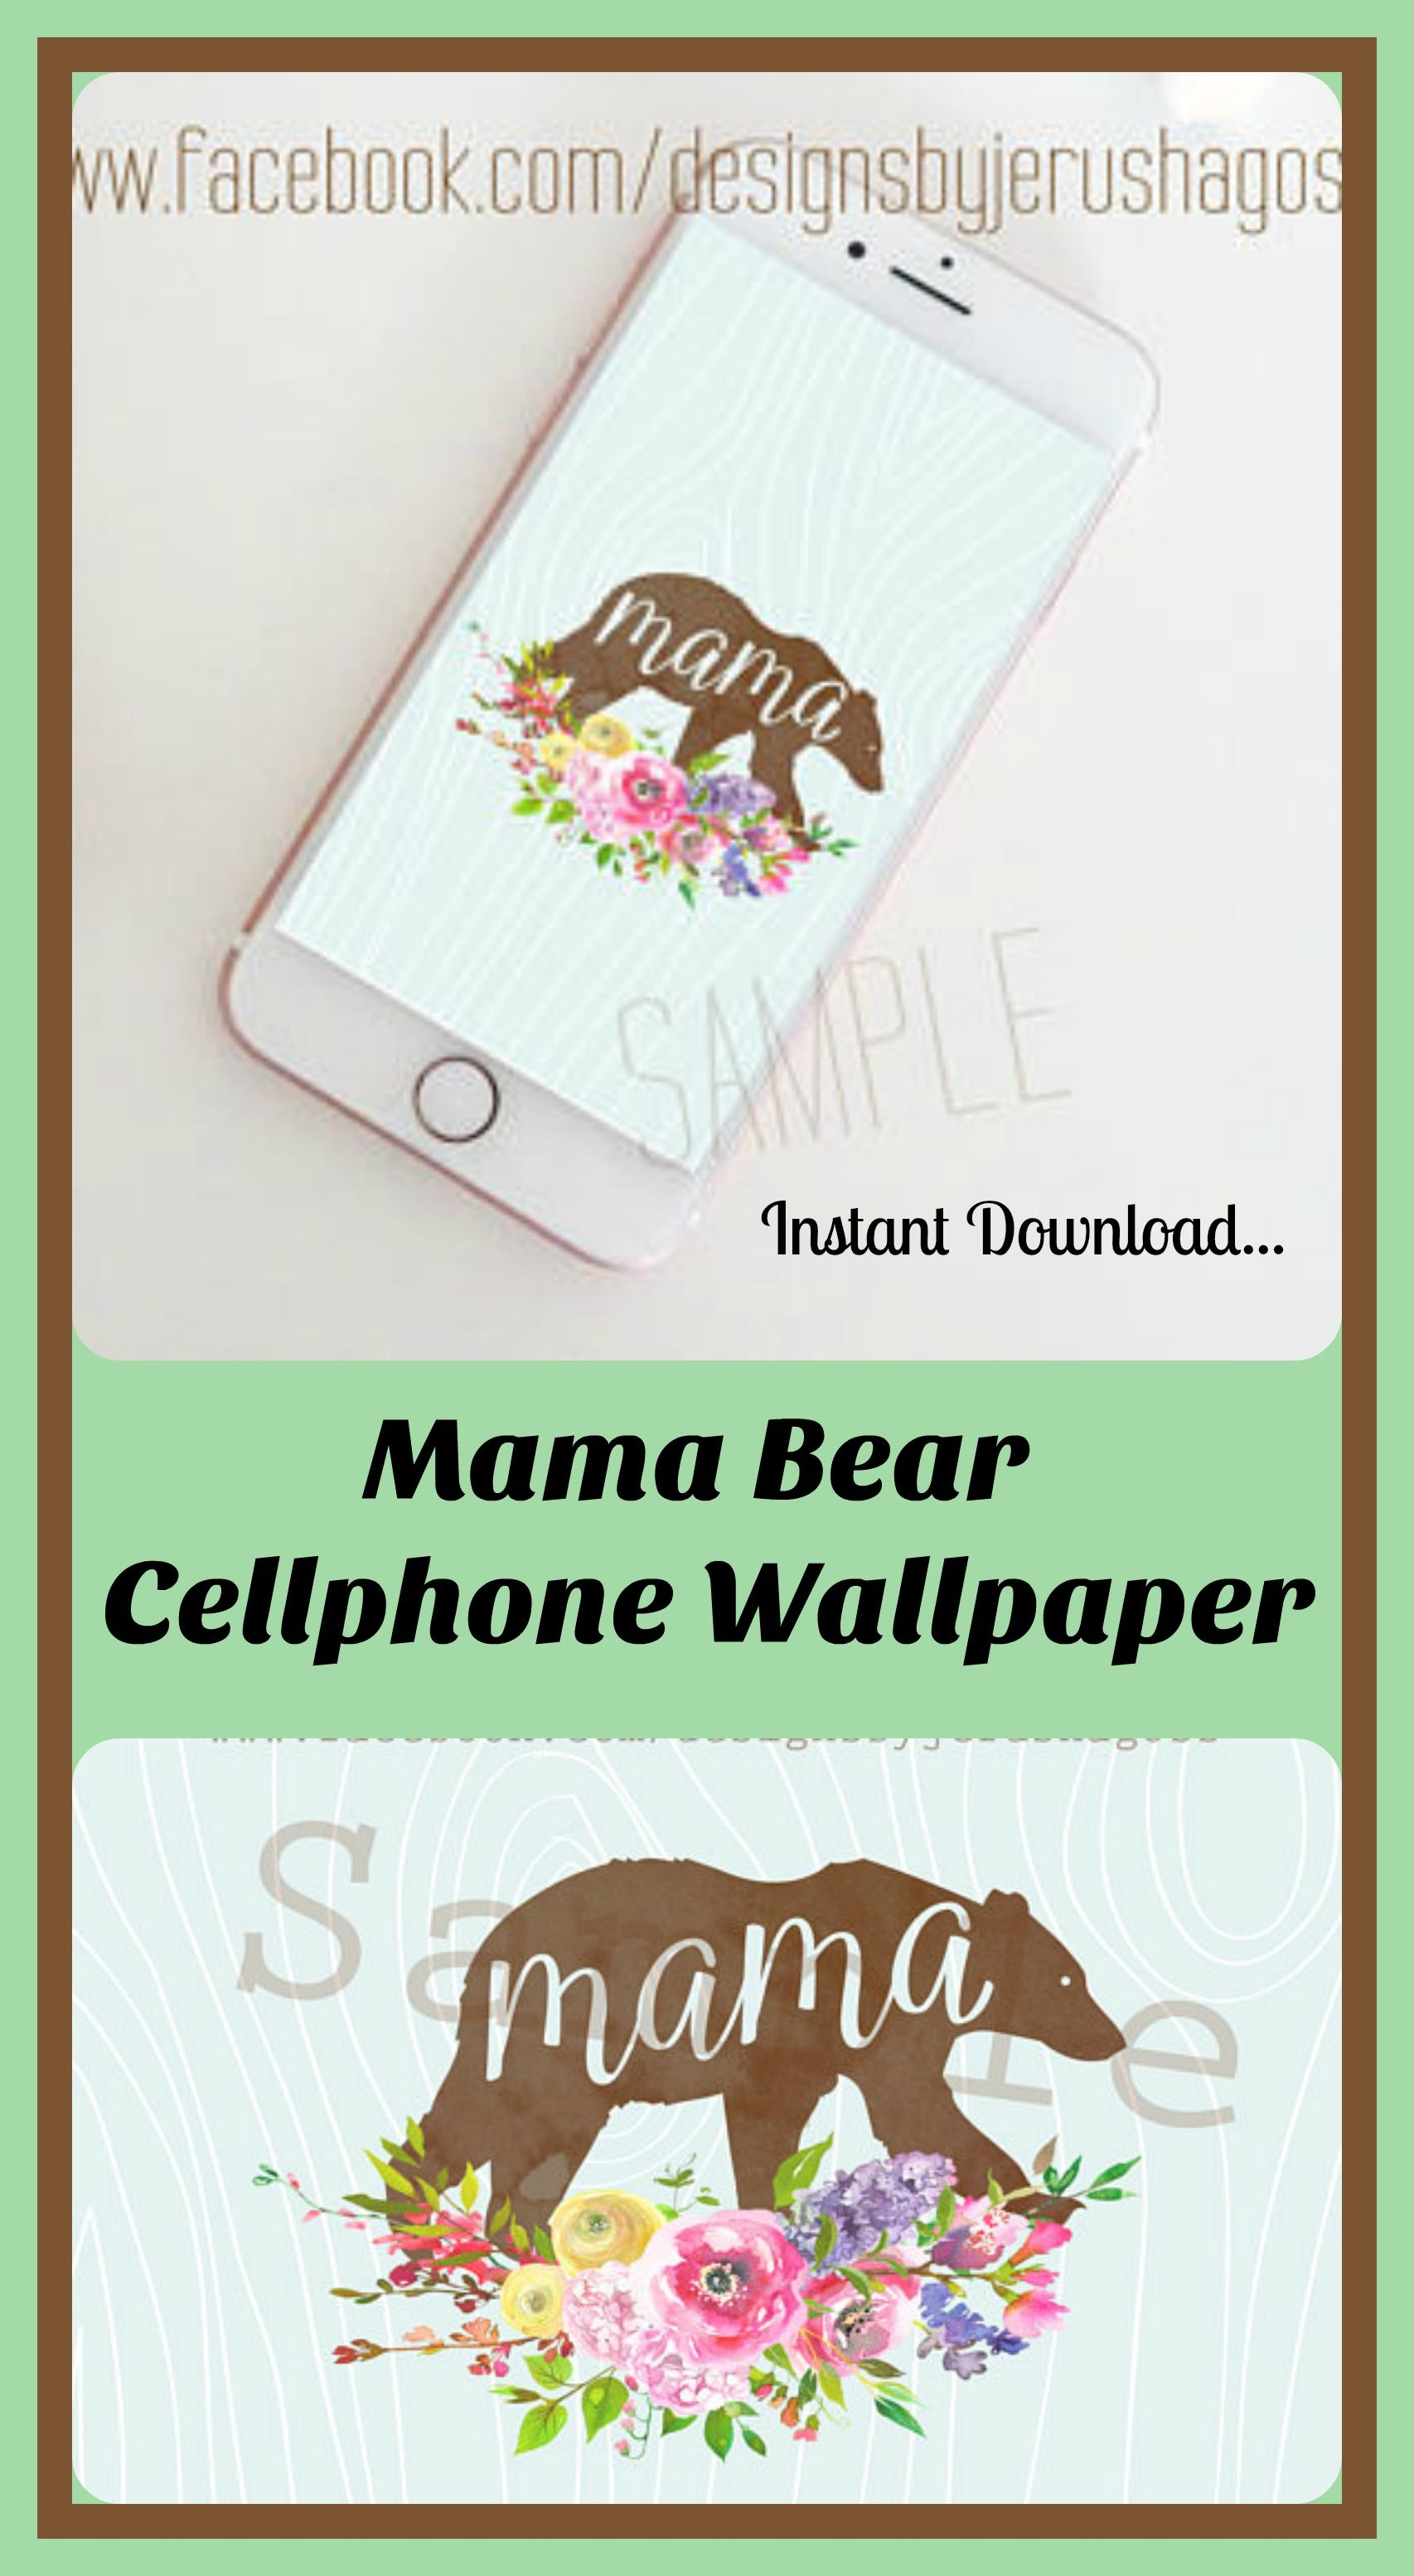 This Would Be So Cute On My Phone Mama Bear Art For Smartphone Cell Phone Wallpaper Phone Background Wall Kids Parenting Discipline Teens Parenting Skills